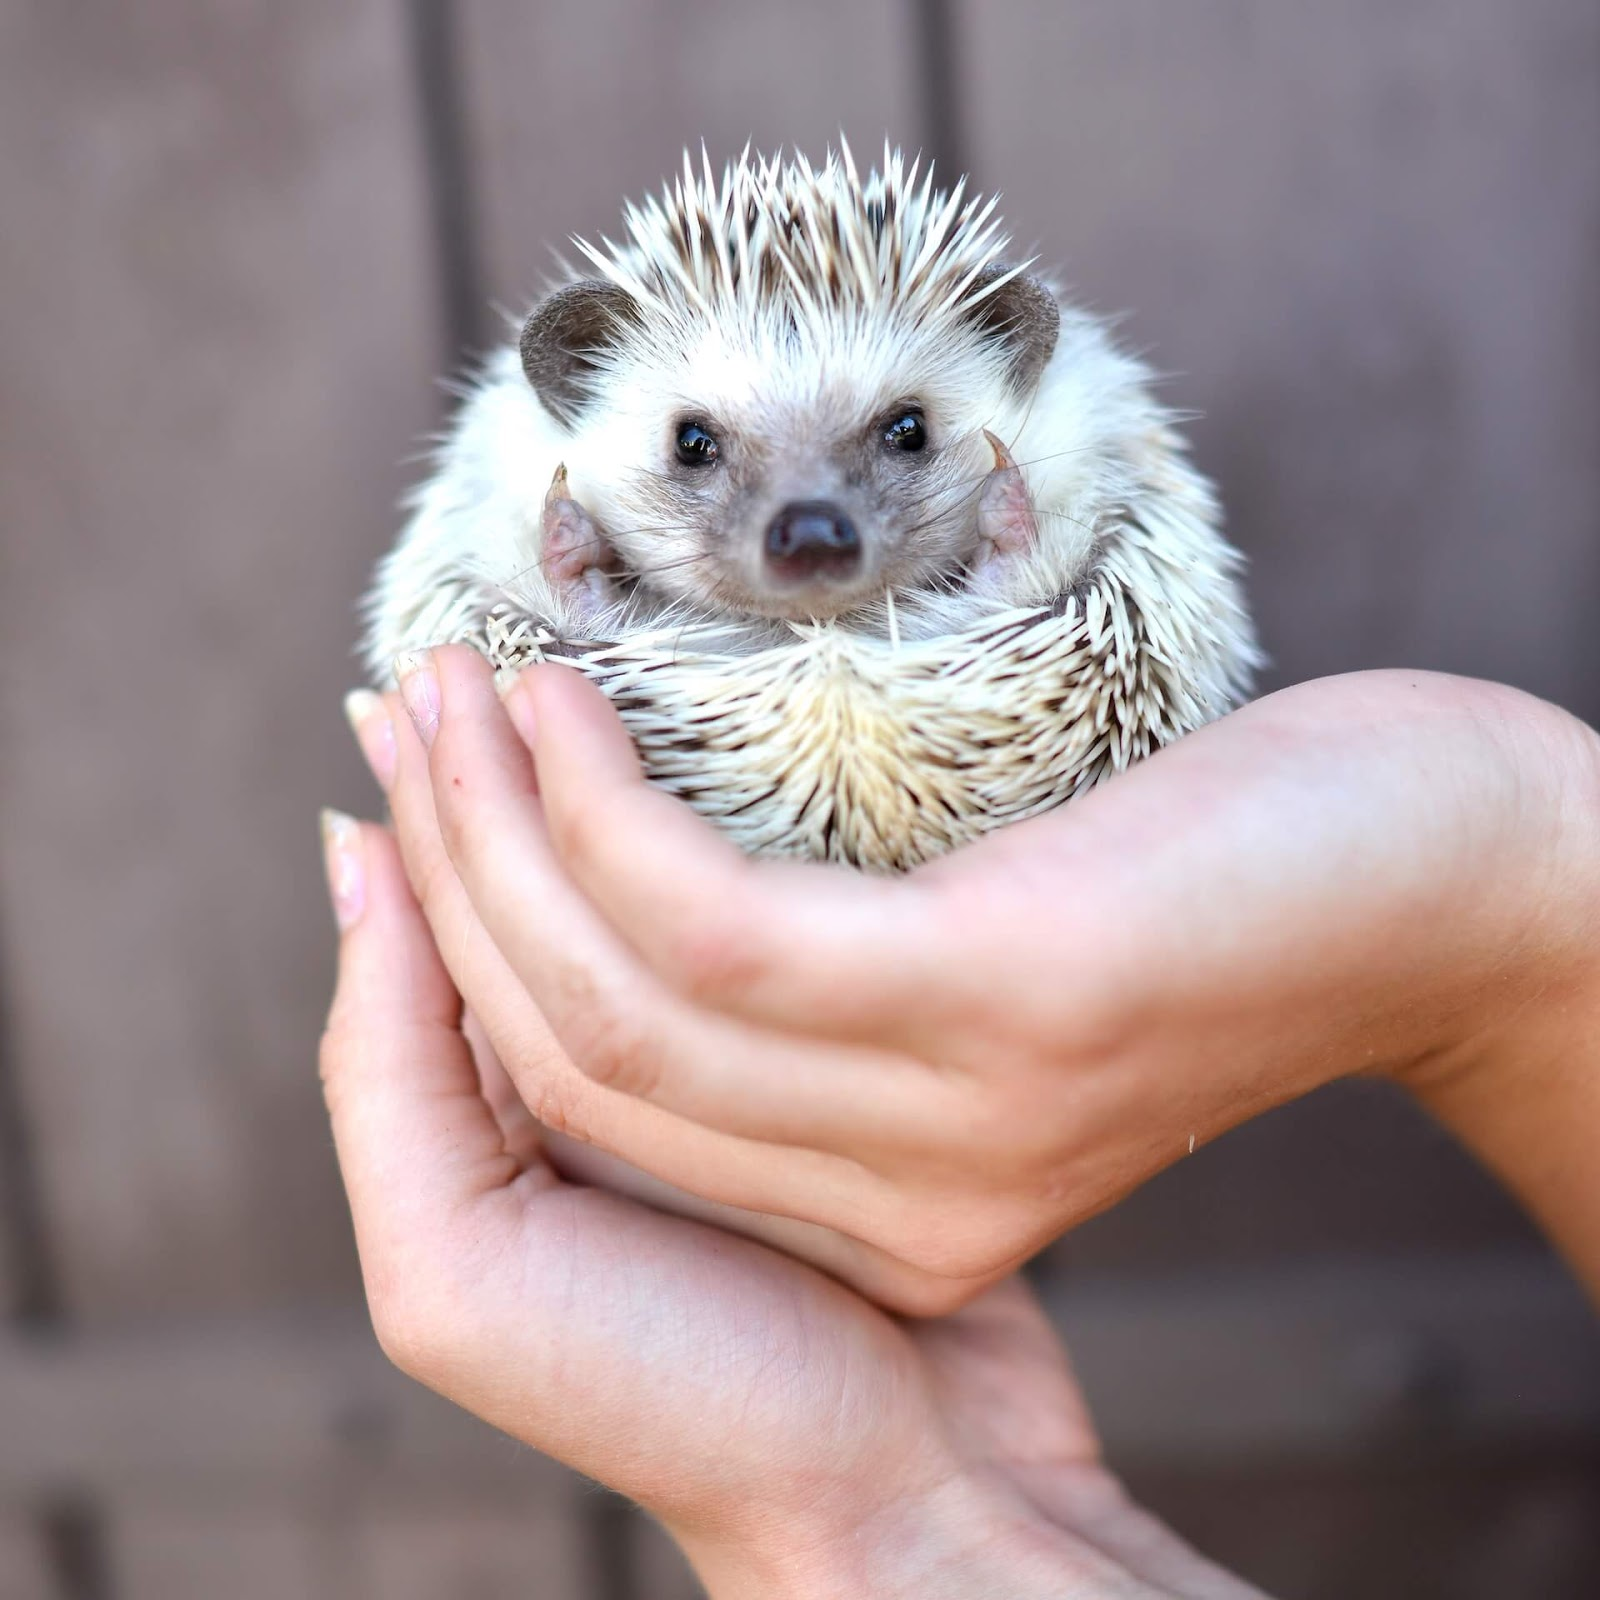 Woman holding a curled up hedgehog